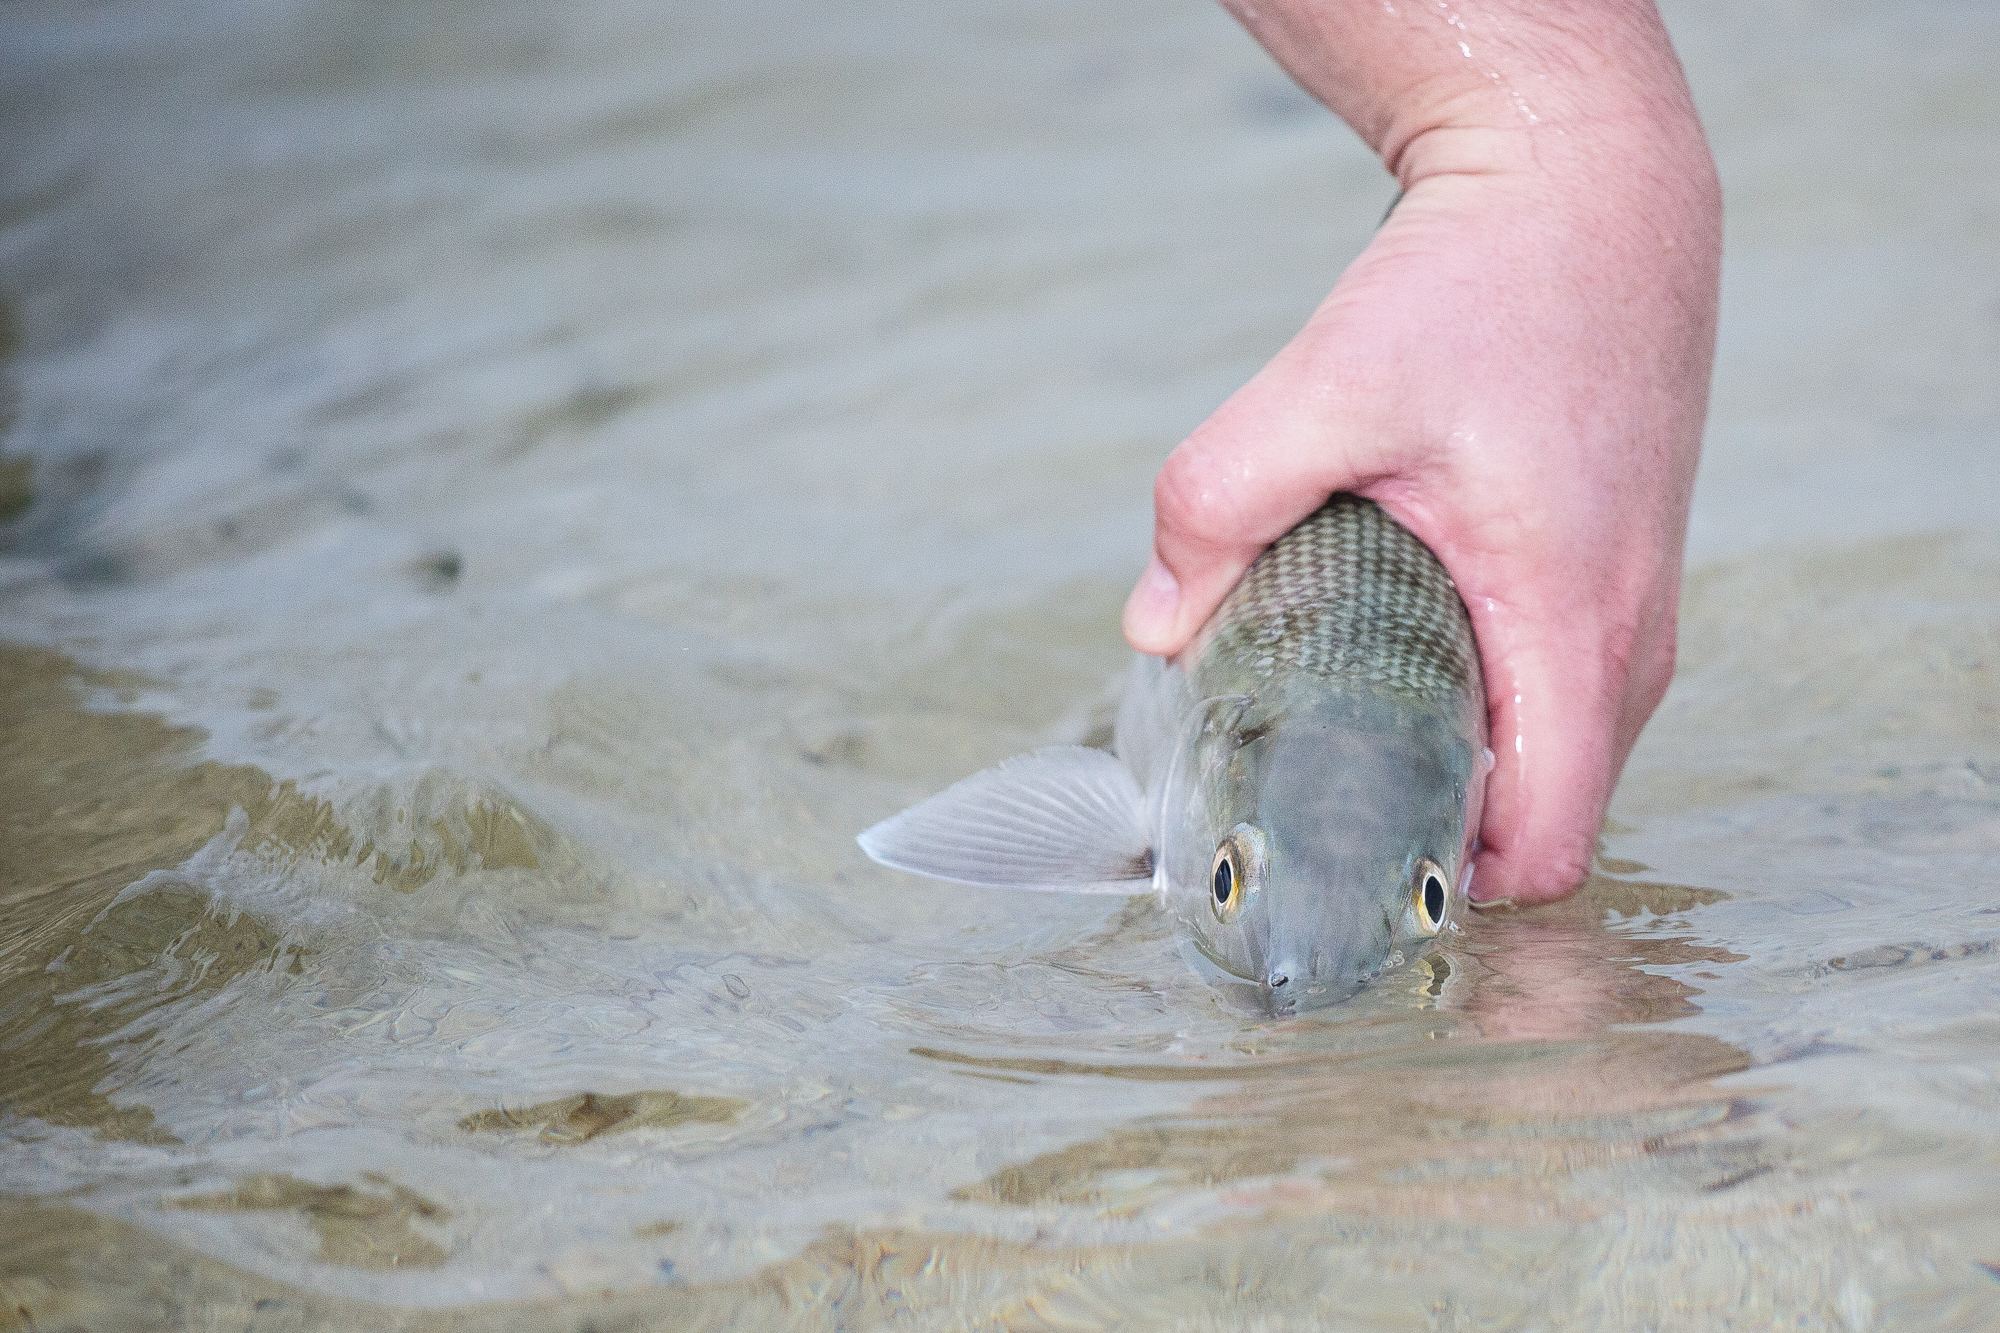 (2/3) Storms roll in only moments after arriving on a prime bonefish flat. Yet, despite steady rain and entirely flat light, guide Arun spots a few cruising bonefish 25 yards off. A couple of casts and backing runs later, a healthy bonefish comes to hand (photo: Chad Shmukler).